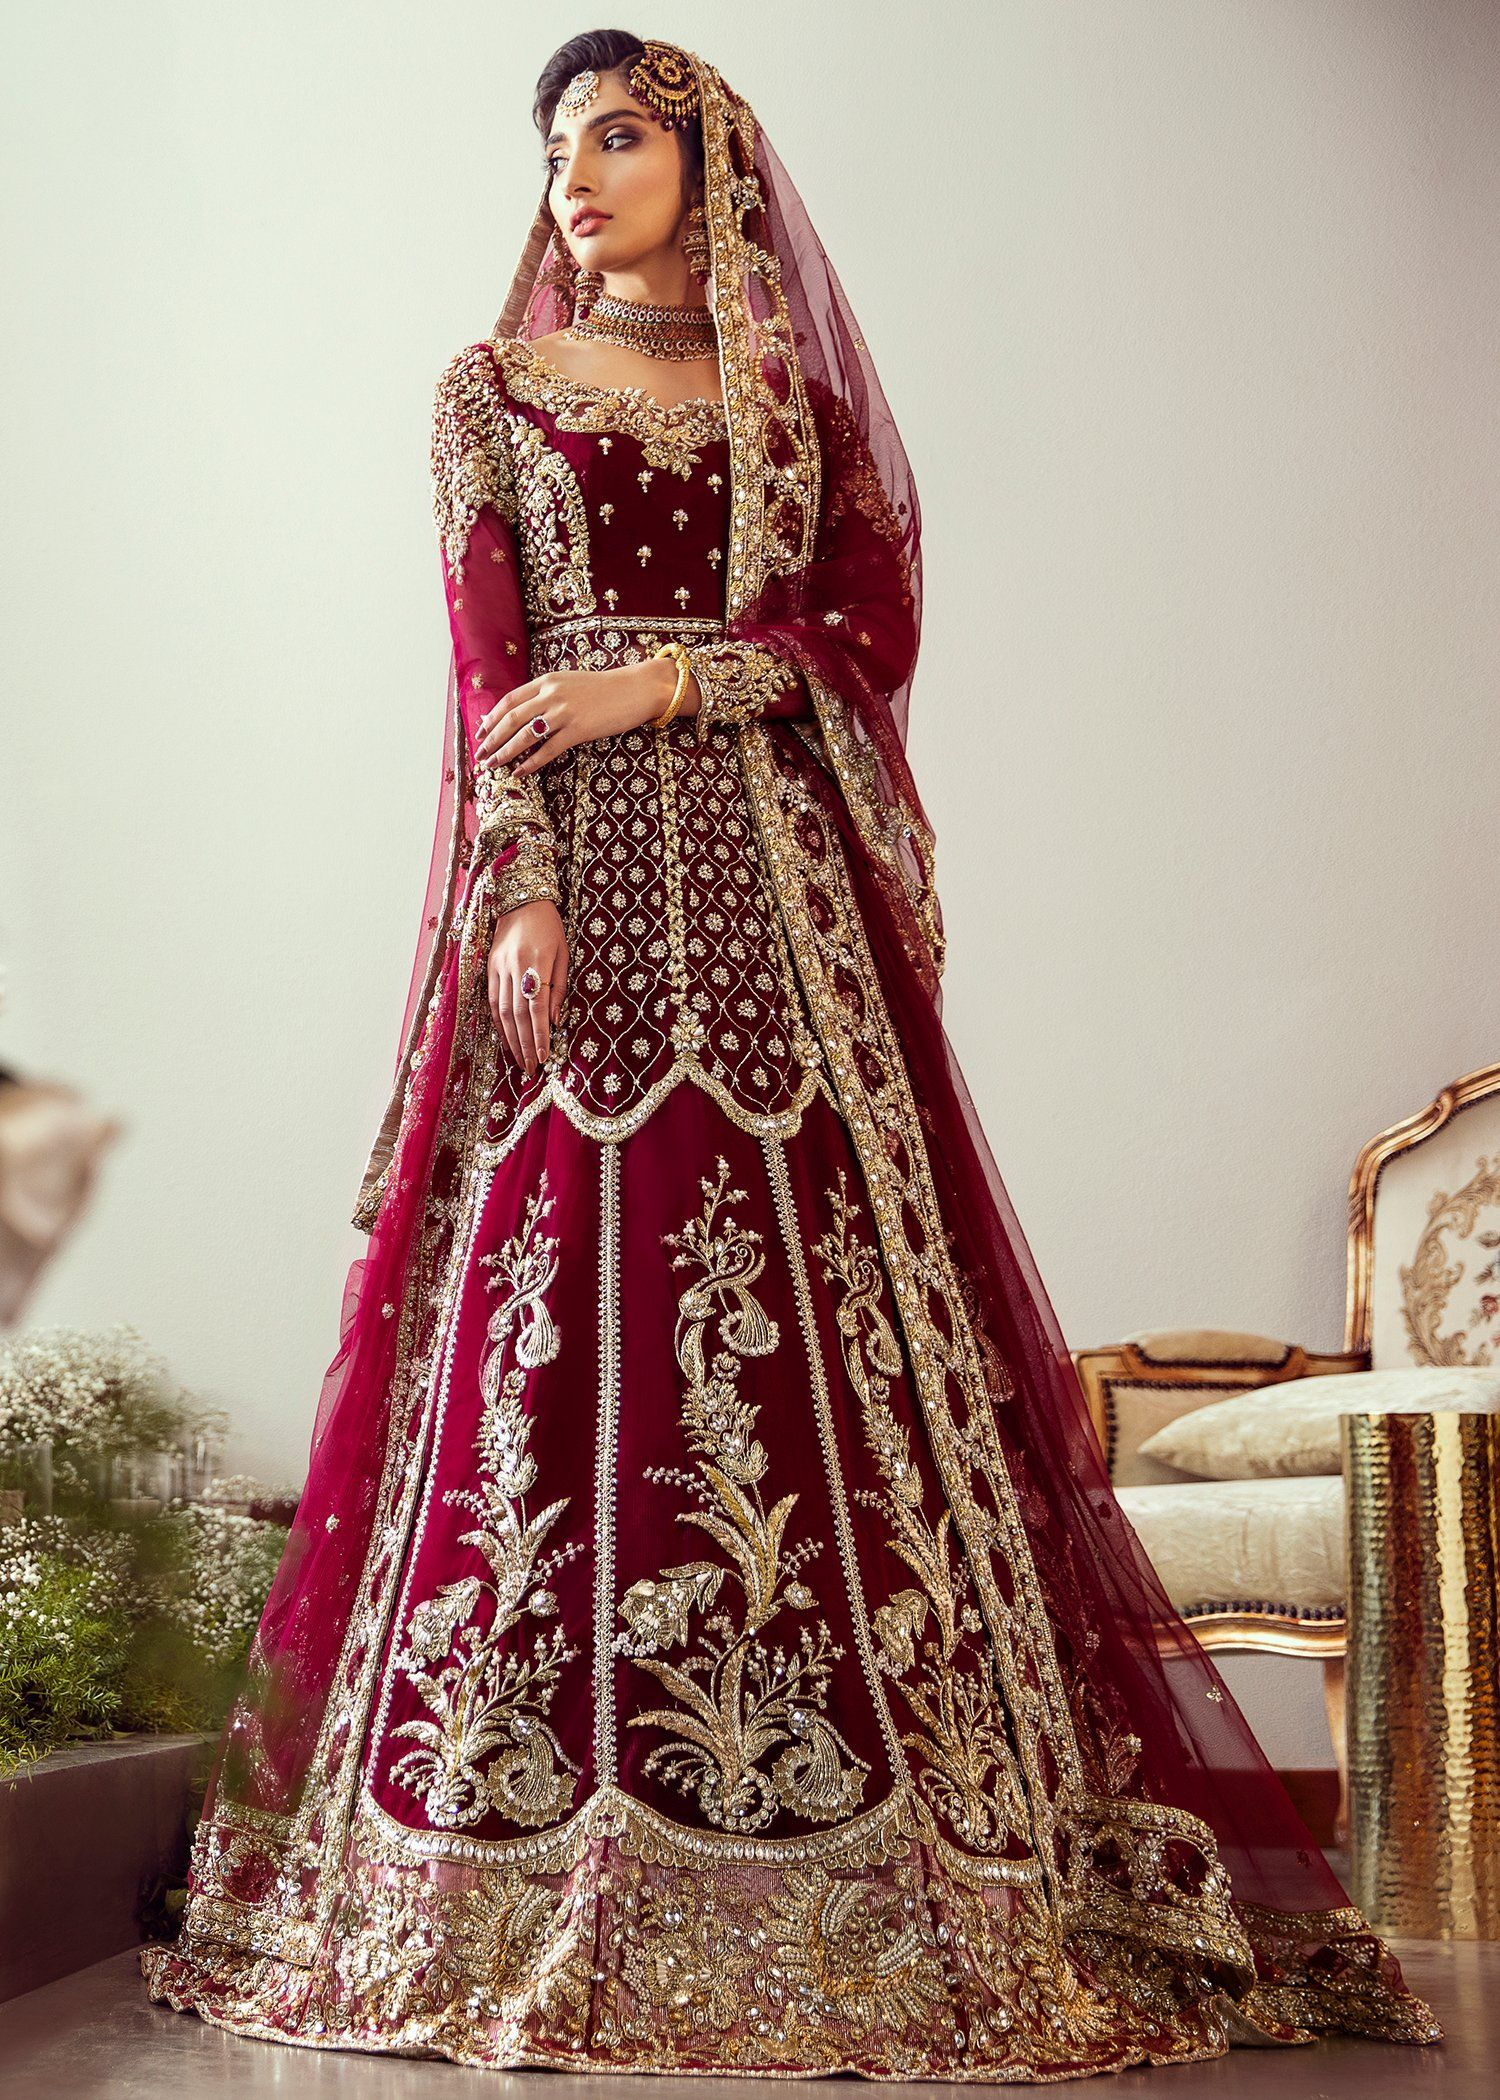 Embroidered Maroon Bridal Lehnga For Wedding N7051 In 2020 Pakistani Bridal Dresses Red Bridal Dress Pakistani Bridal Couture,Used Wedding Dresses For Sale Online India